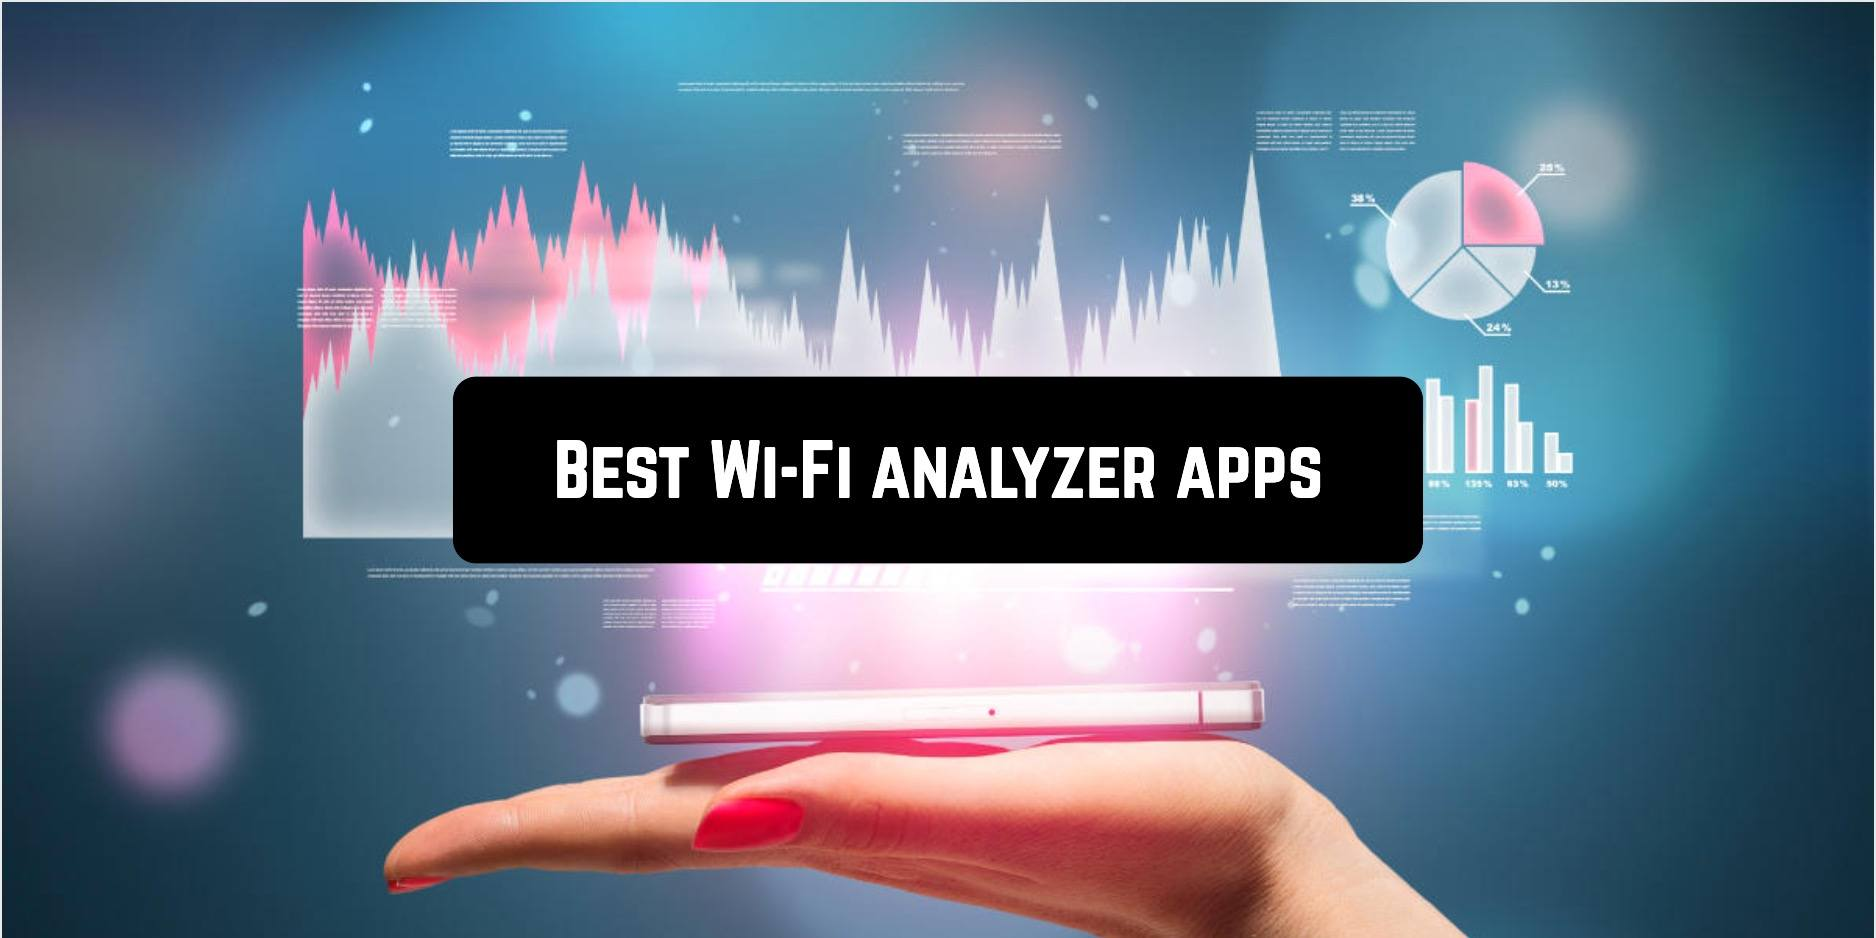 Best Wi-Fi analyzer apps